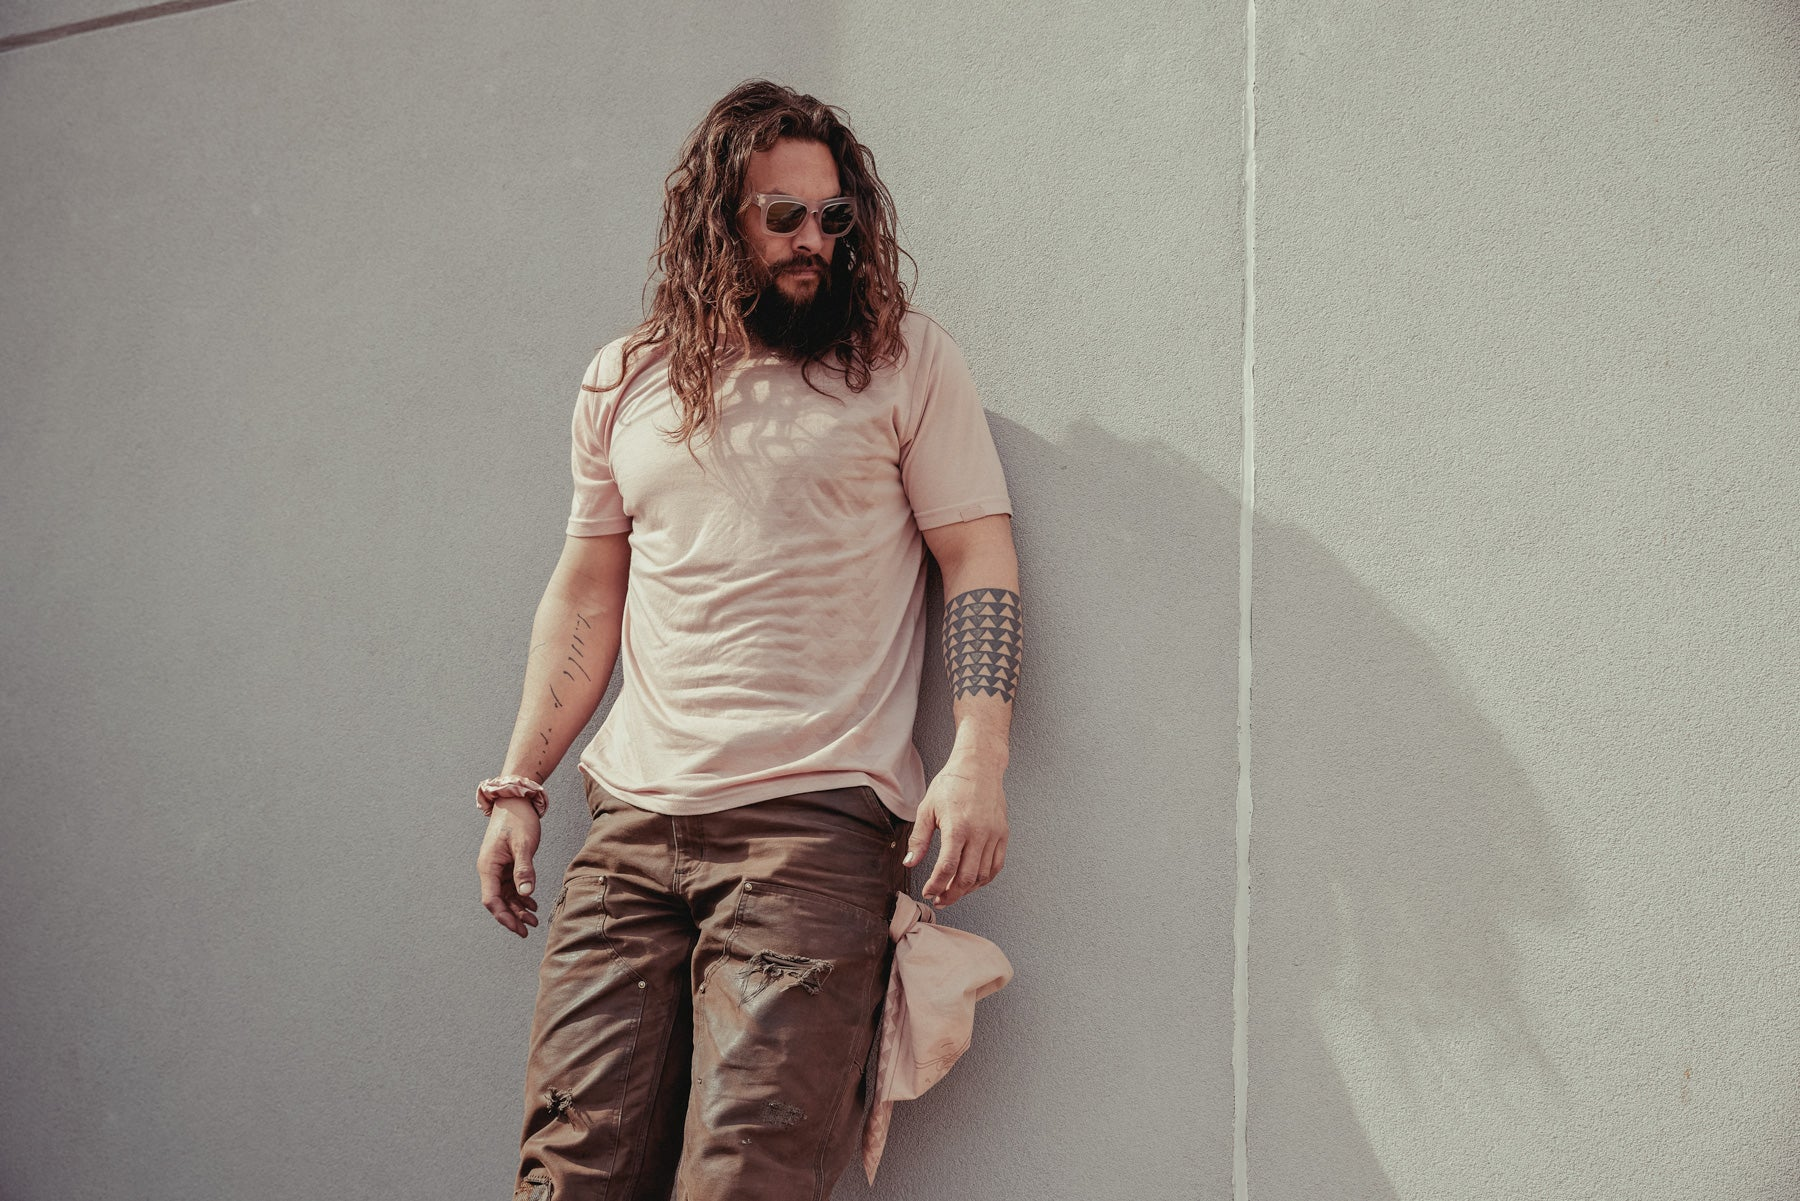 Jason Momoa shown wearing the so ill x on the roam dirty pink nokoa tee leaning up against a wall